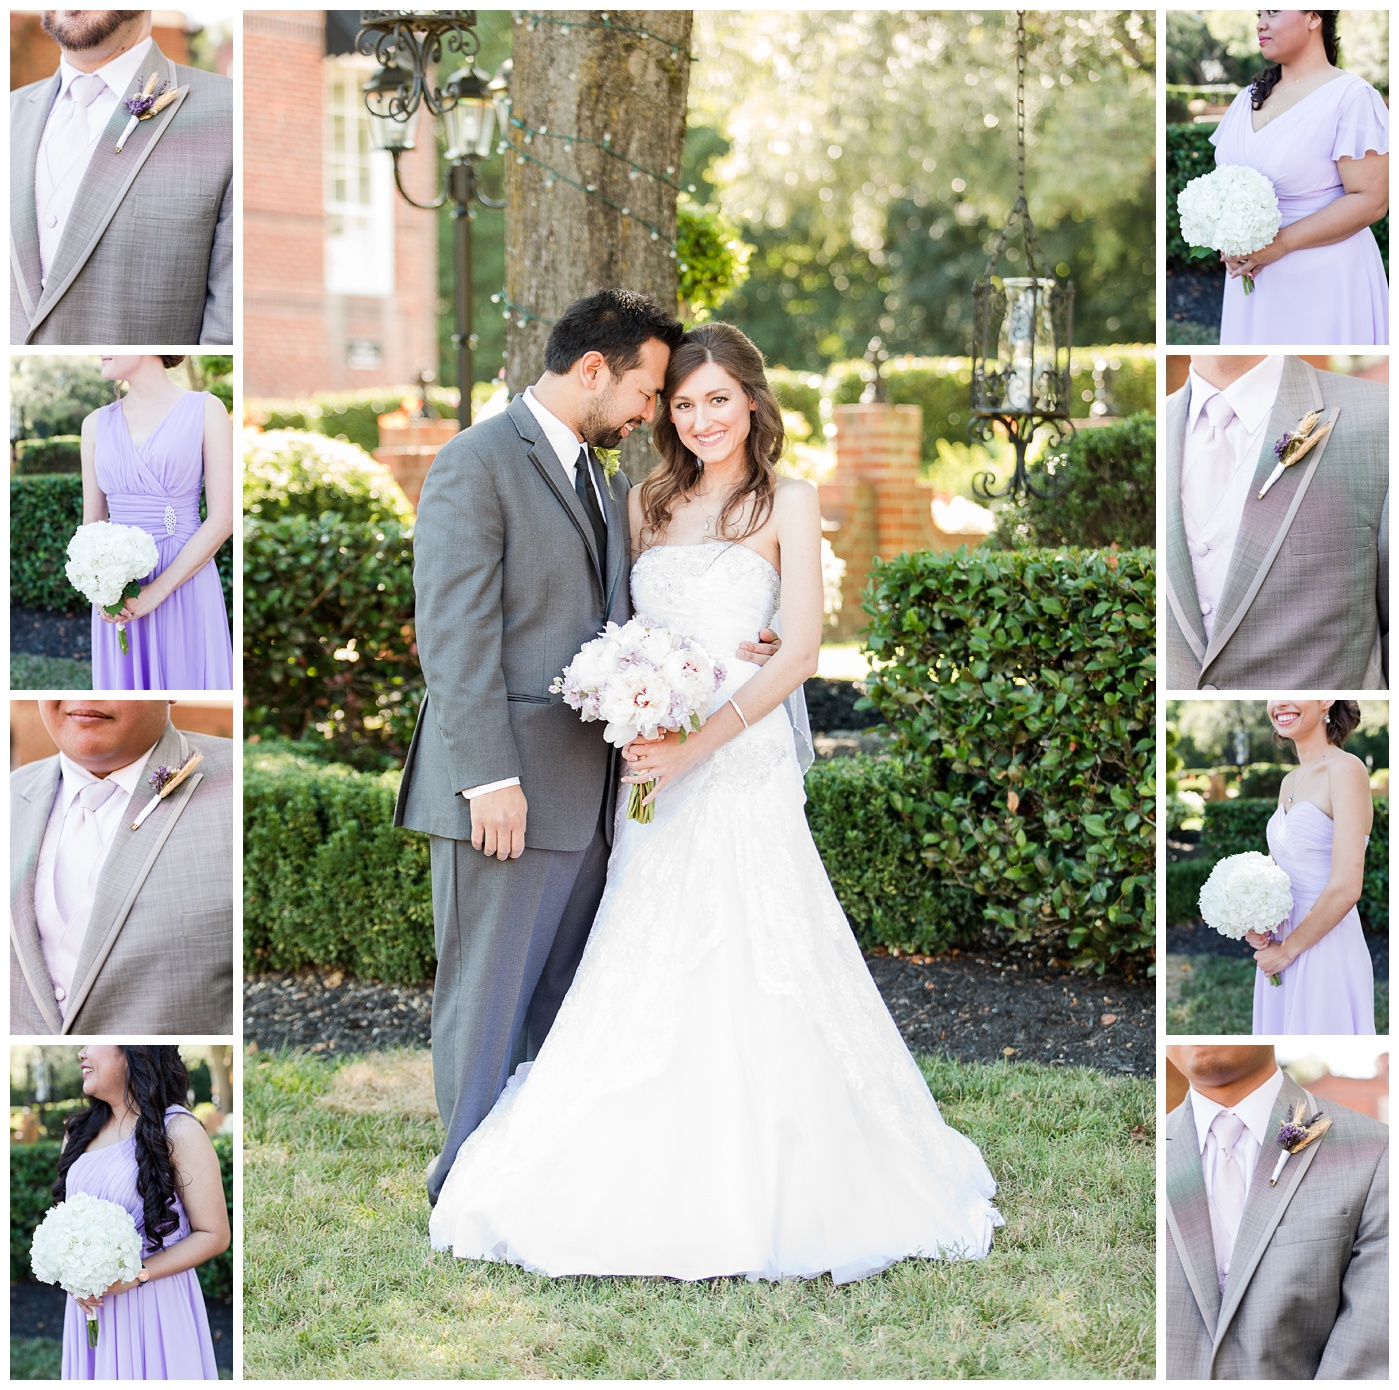 Jacky & David | Historic Mankin Mansion Wedding